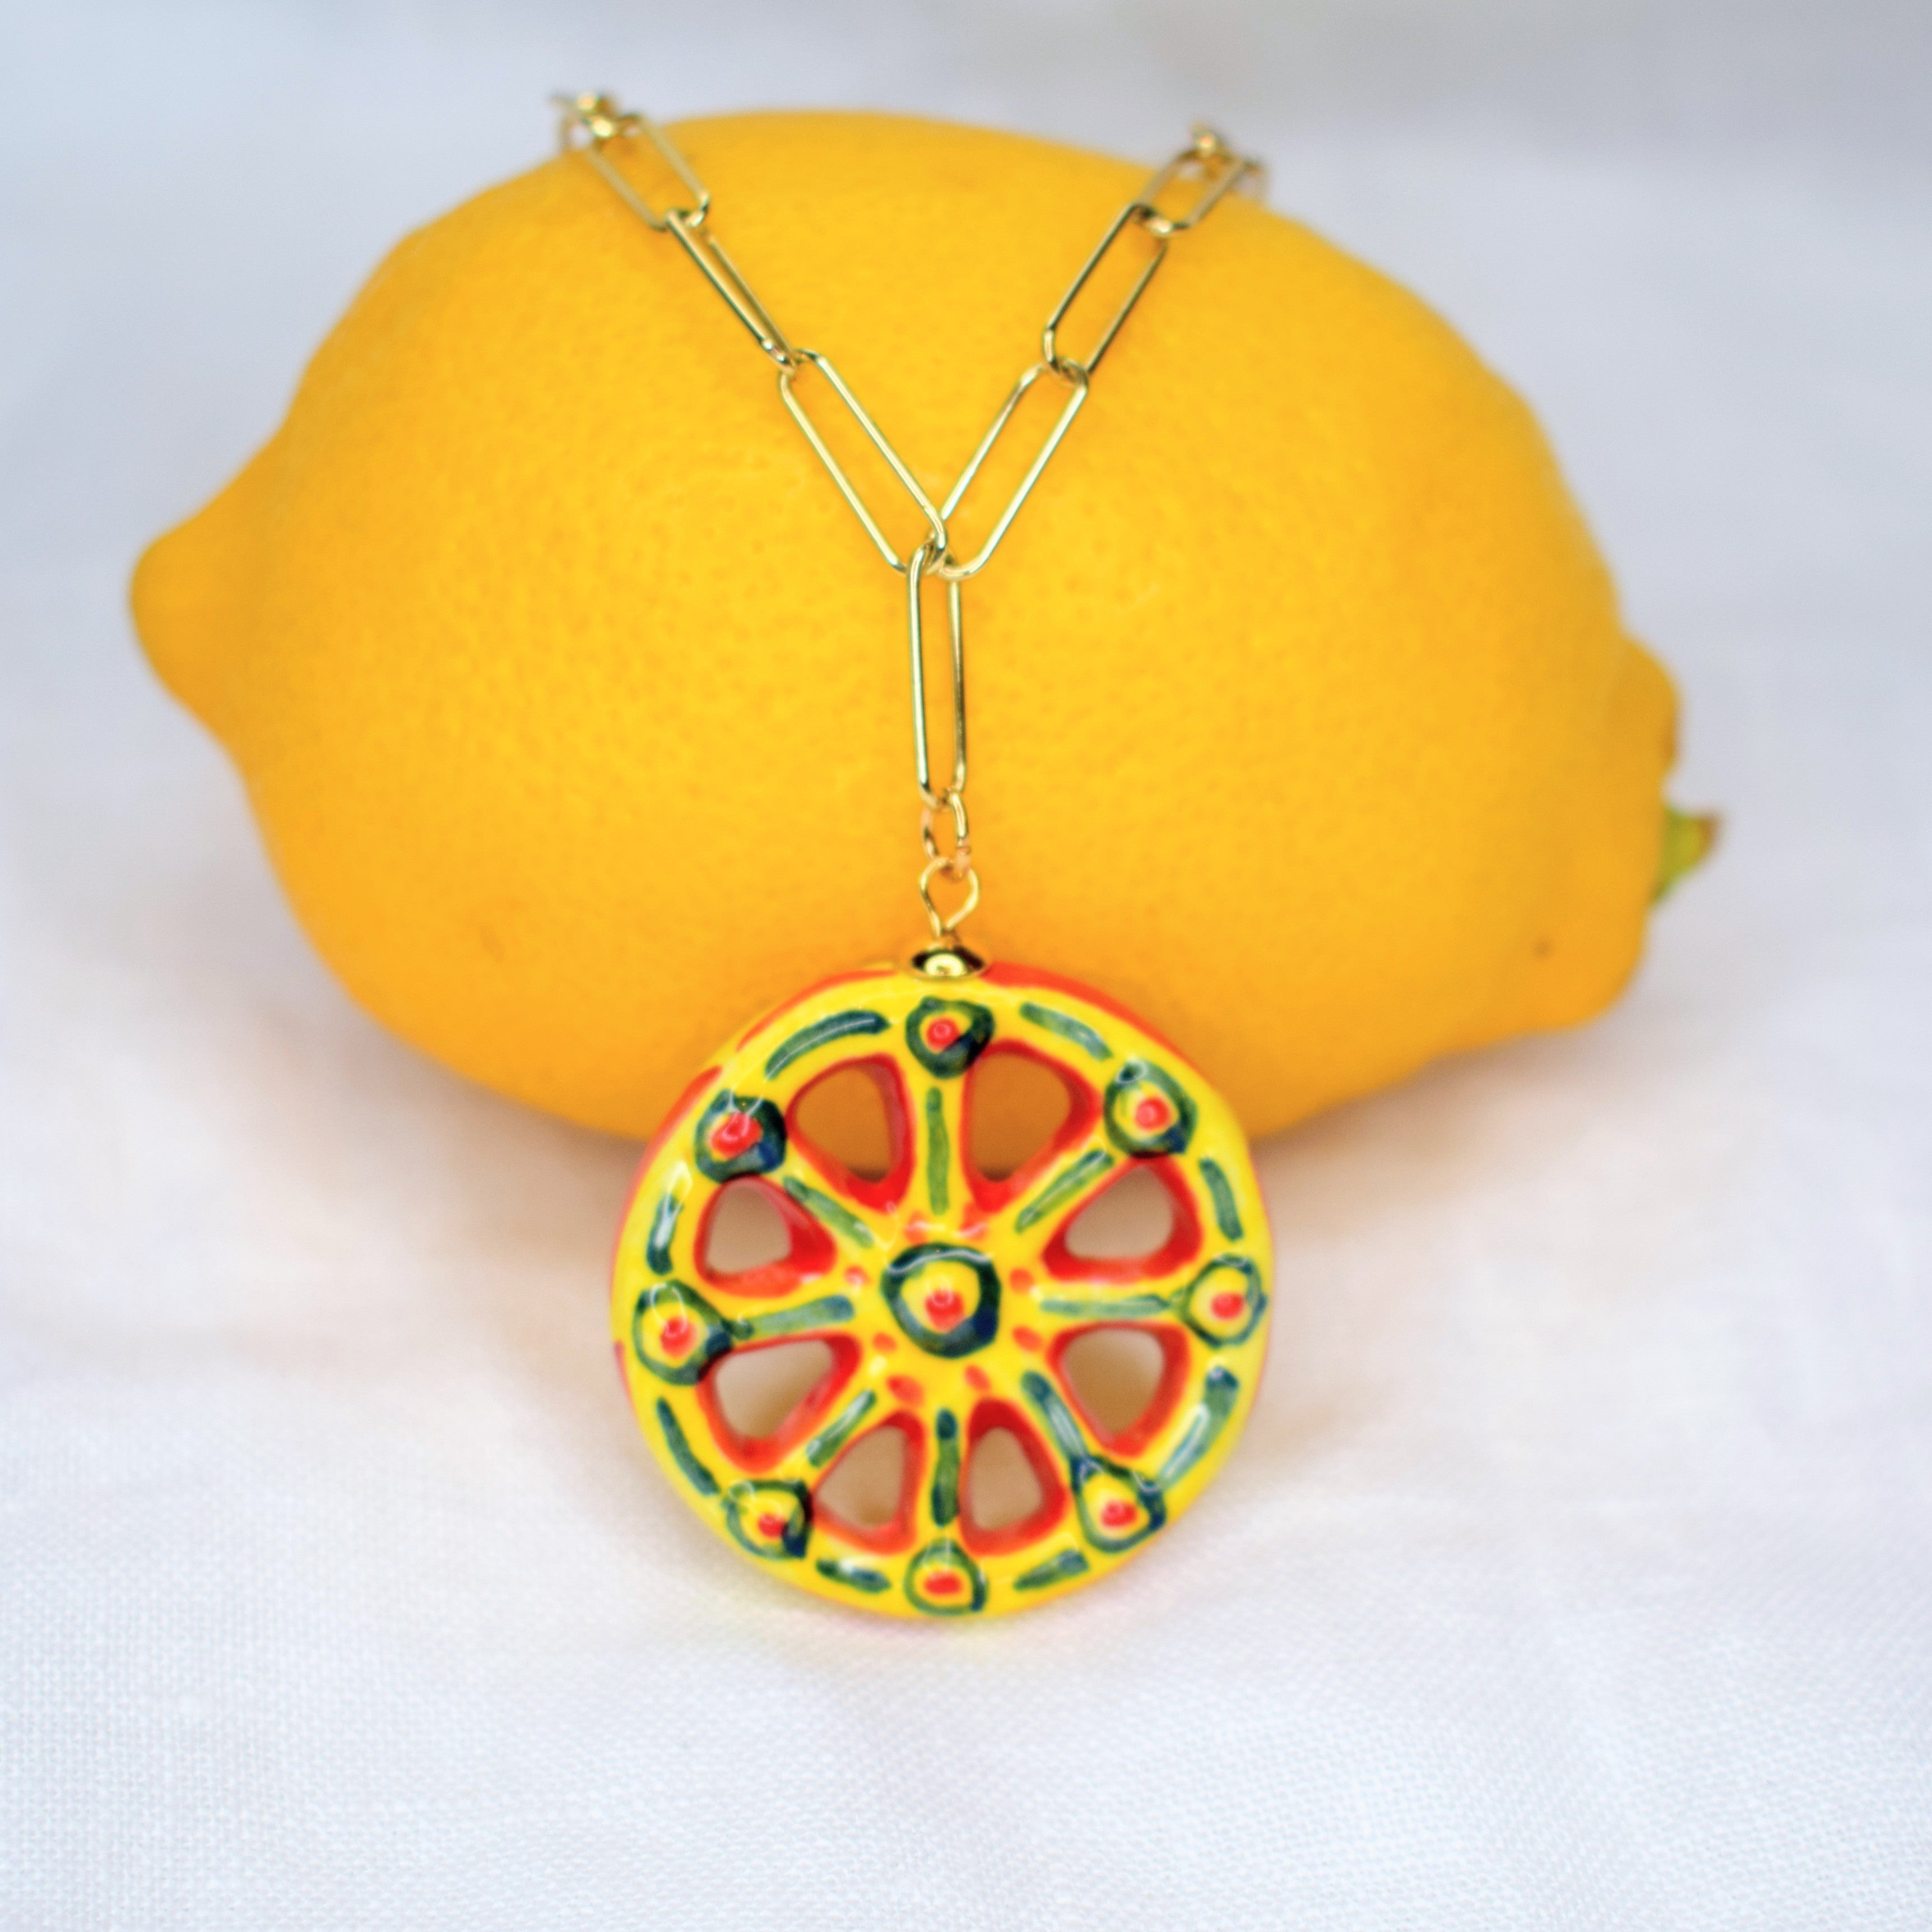 Sicilian Cart Wheel Necklace - Oriana Lamarca LLC